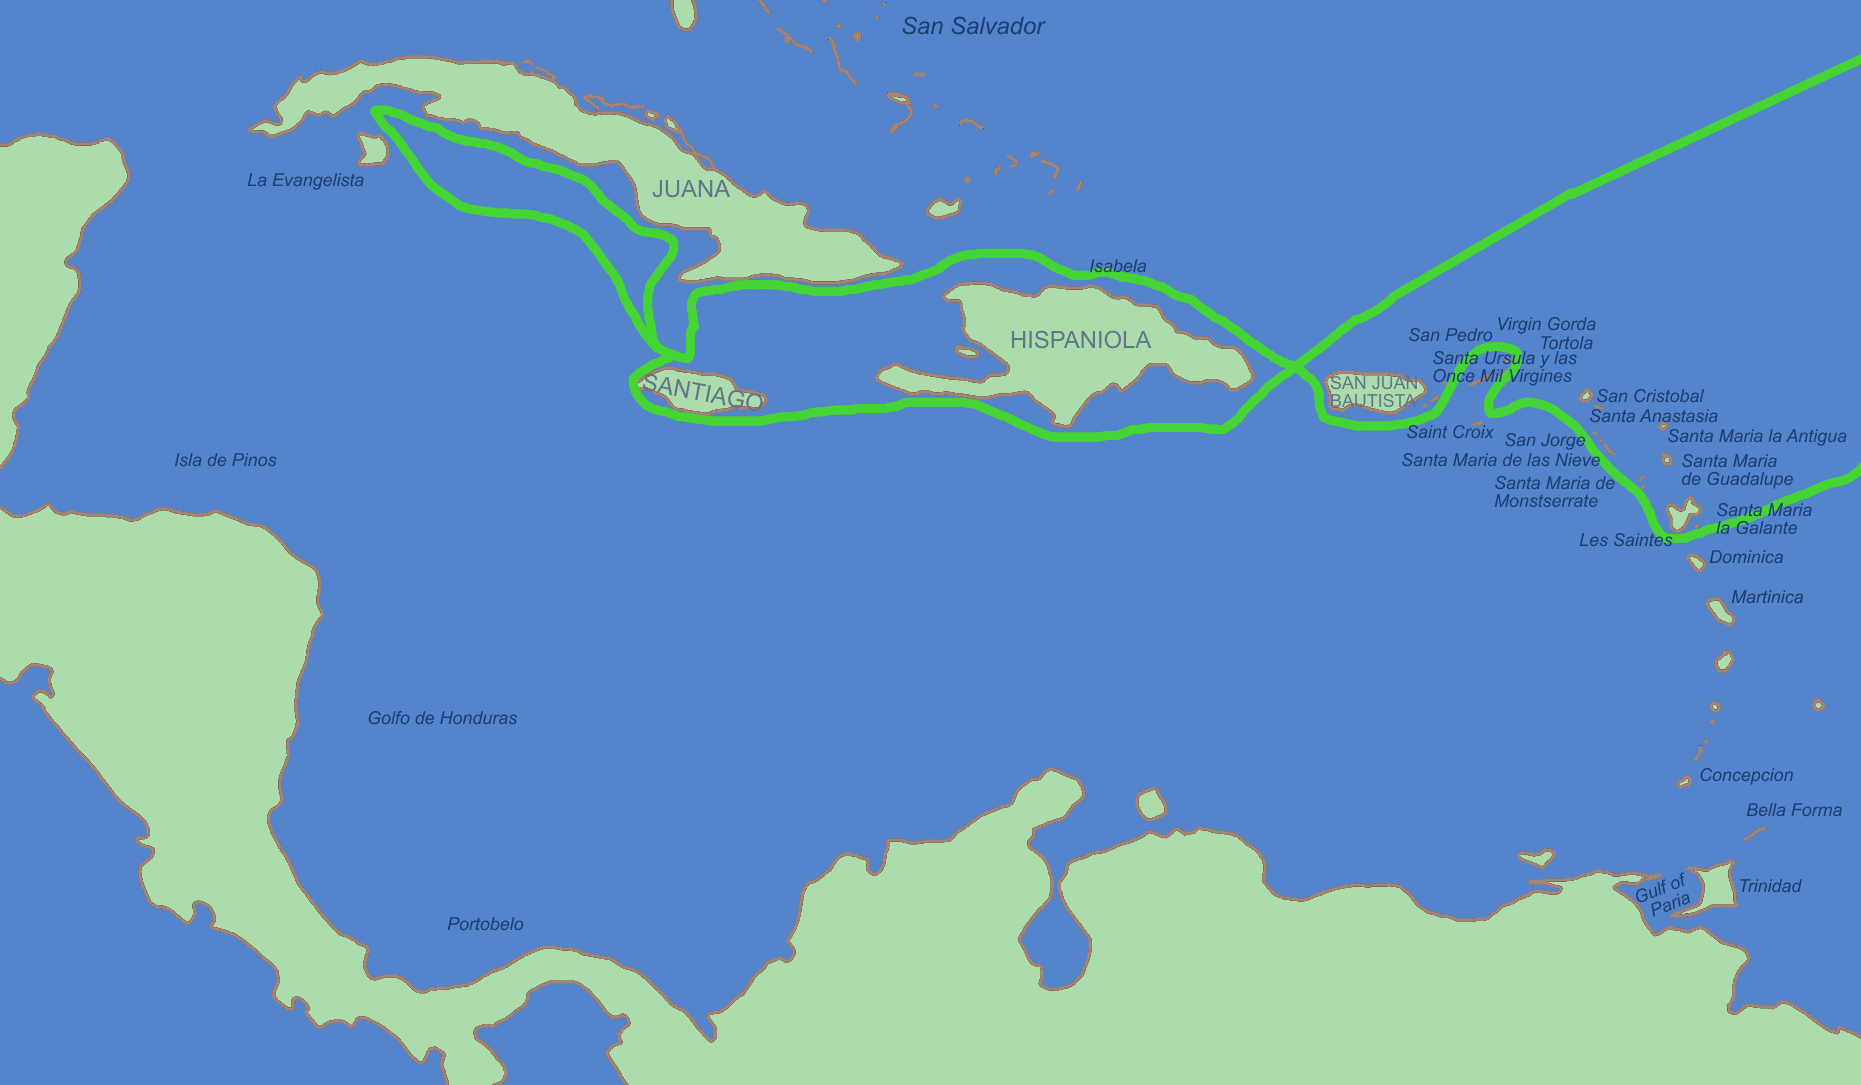 Second voyage of Christopher Columbus in 1493